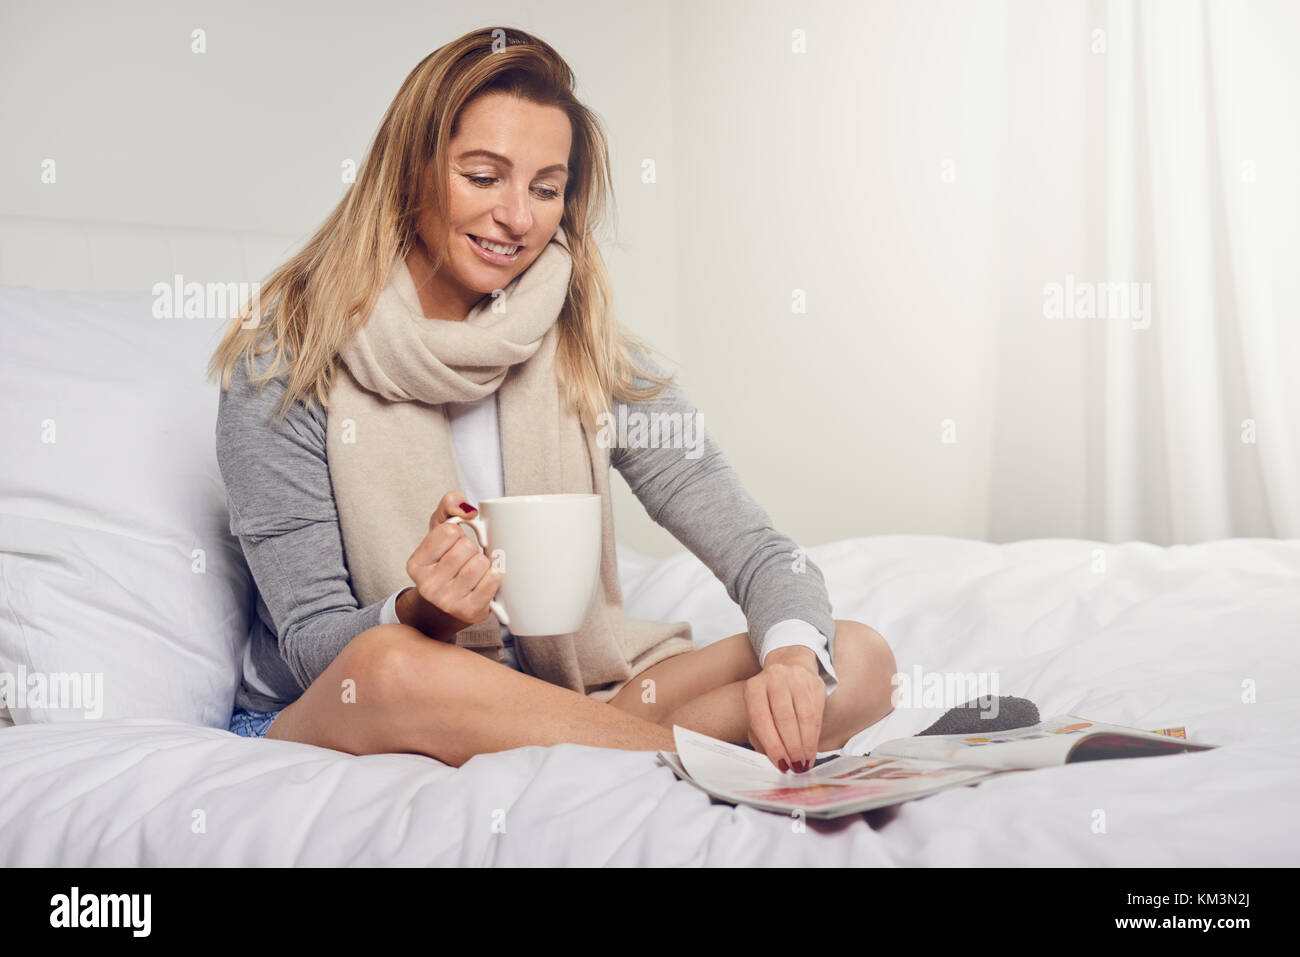 Attractive smiling contented young woman reading a magazine as she relaxes barefoot on her bed with a mug of coffee - Stock Image